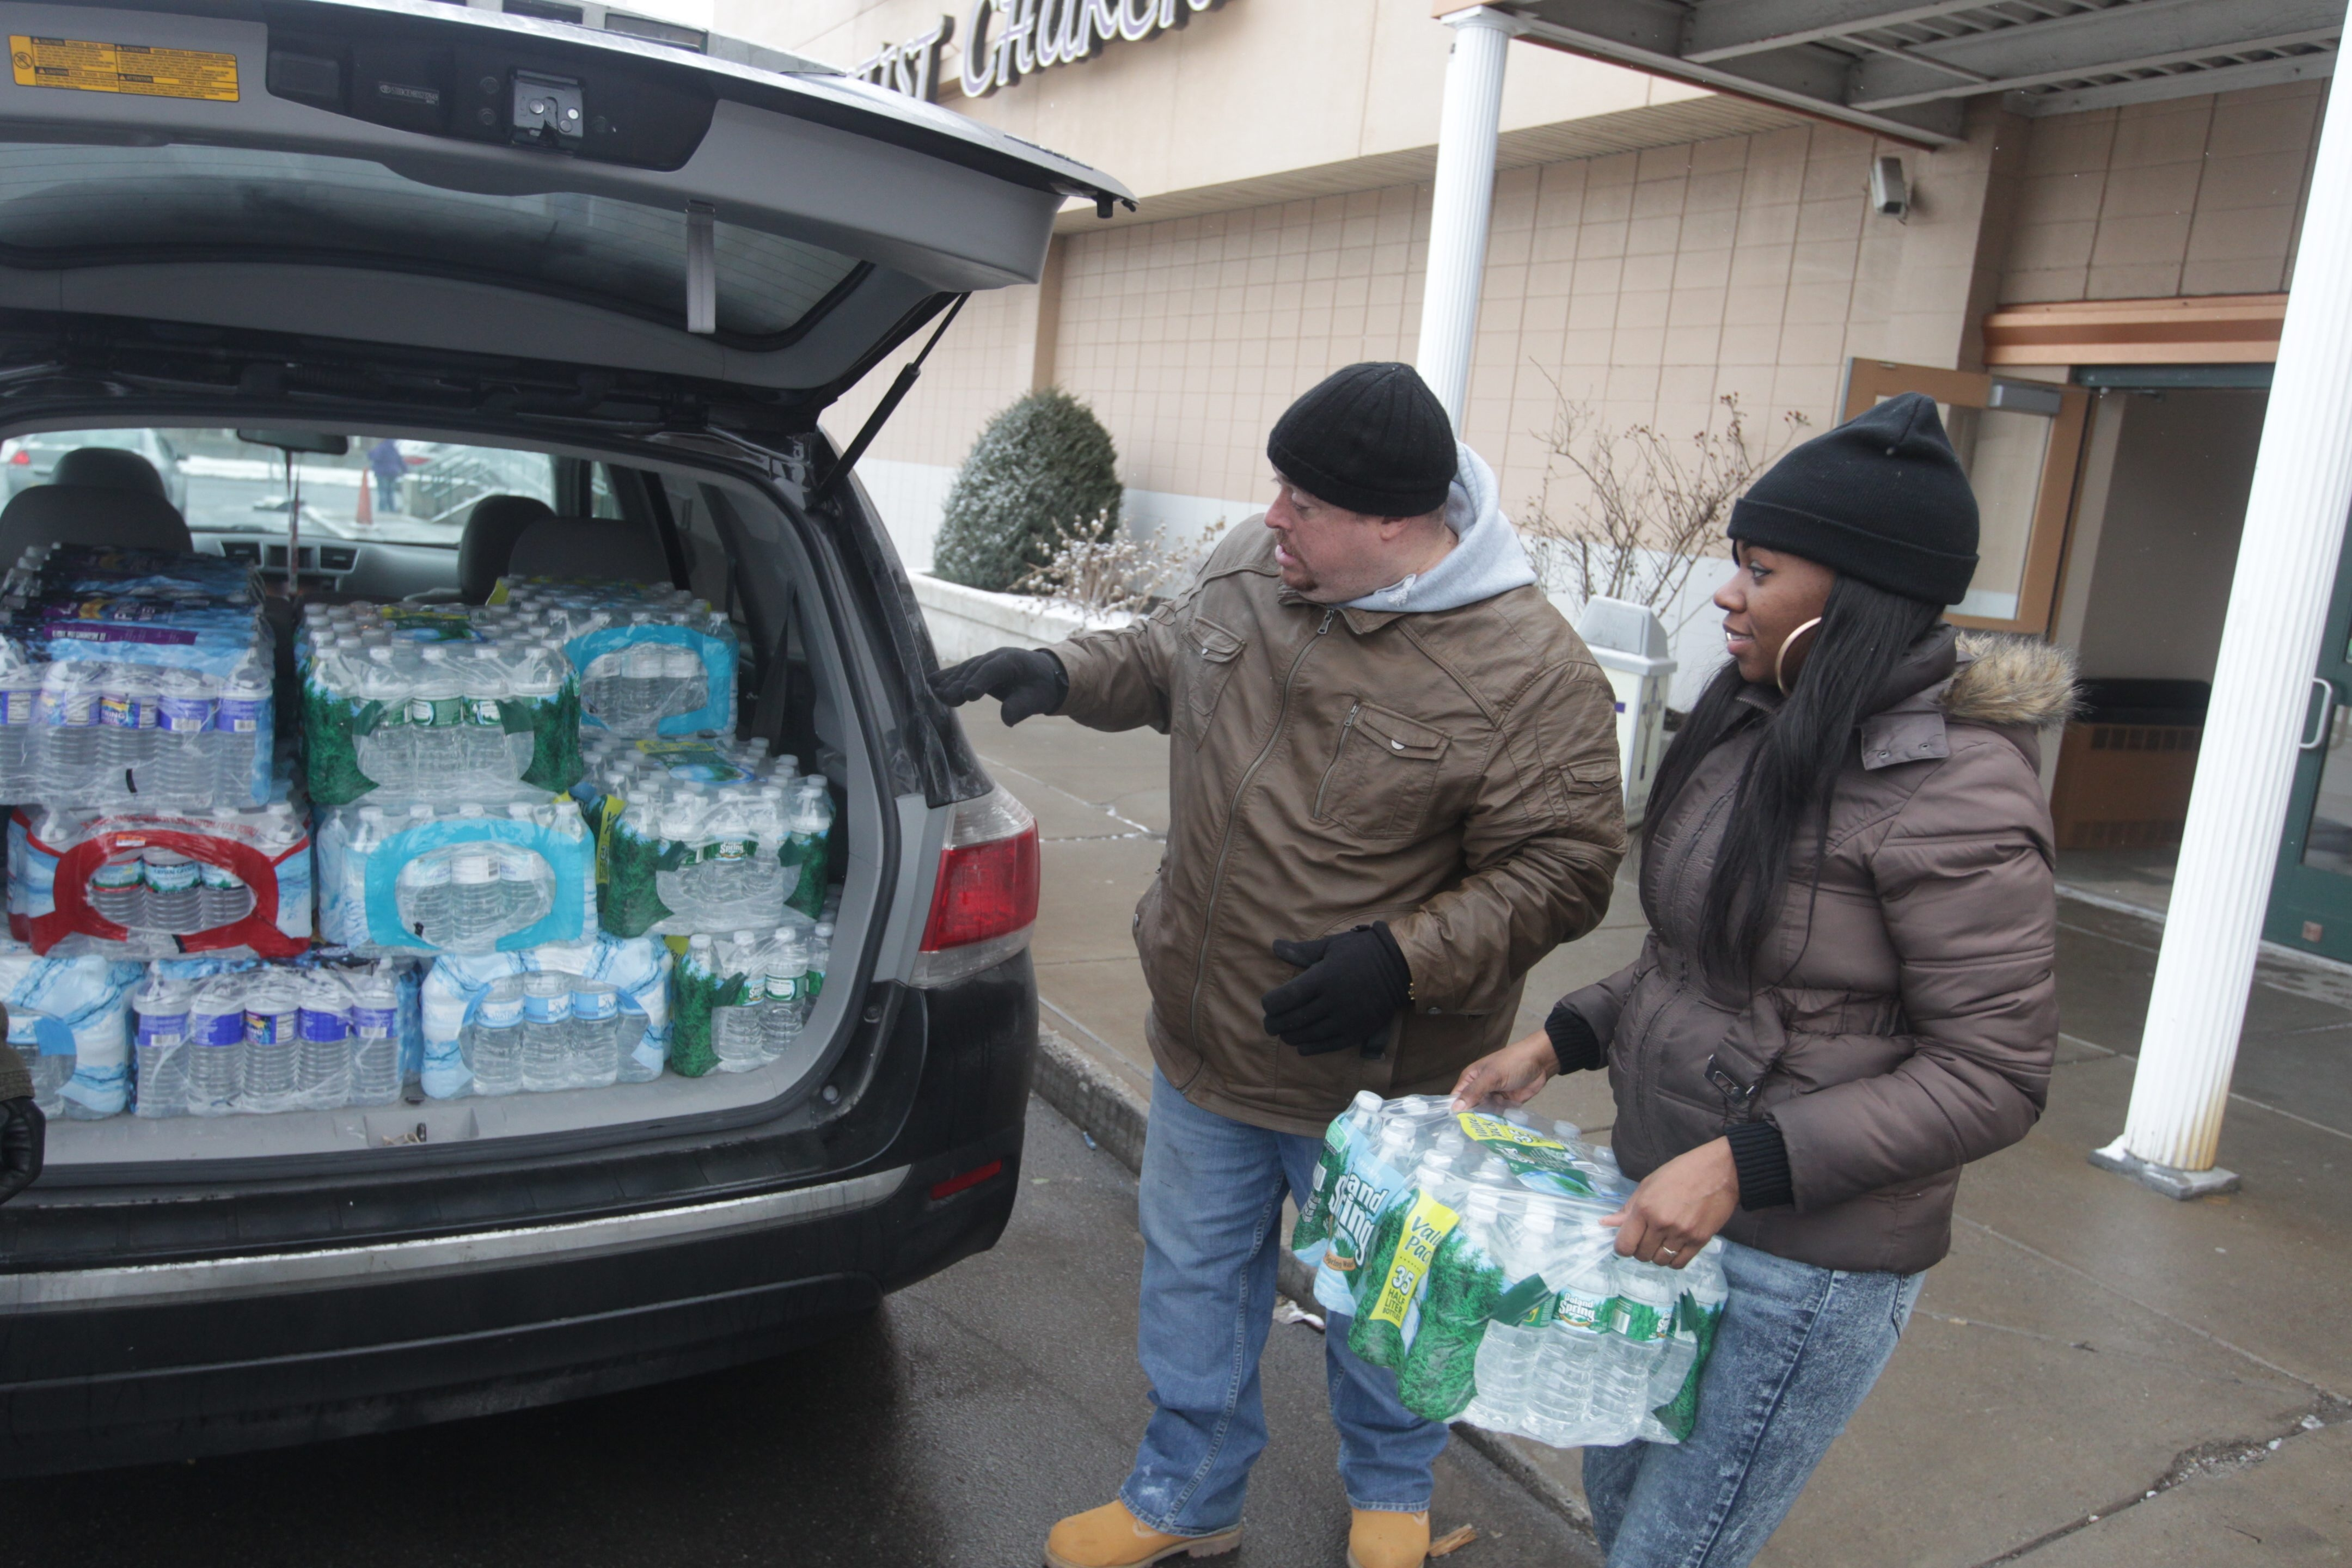 Don Allen Jr., left, and Lois Buchanan load cases of water into Bob Rich III's vehicle on Friday. Several dozen volunteers from Buffalo and Syracuse teamed up for Operation H2O to deliver bottled water to residents in Flint, Mich.  (John Hickey/Buffalo News)